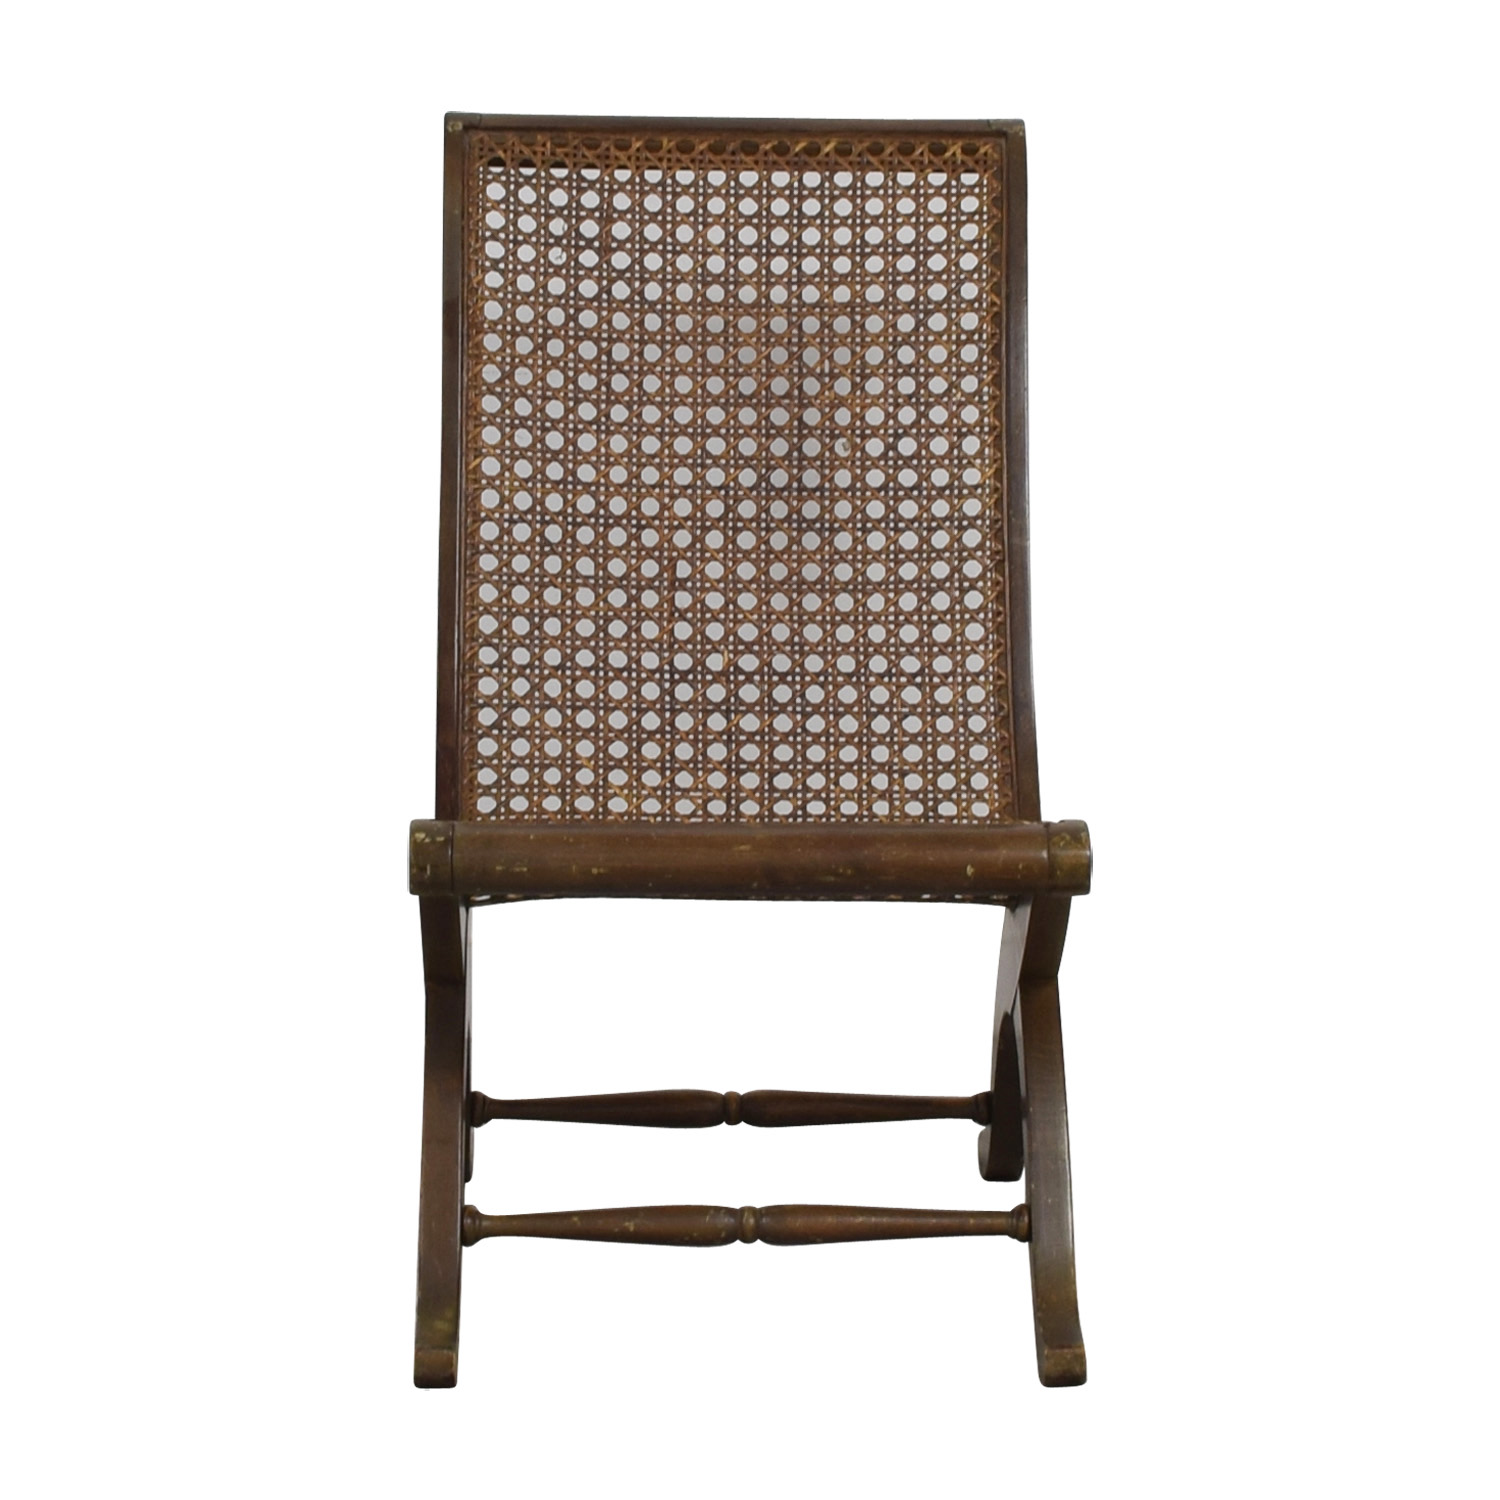 Antique Sloped-Back Cane Rattan Accent Chair / Accent Chairs